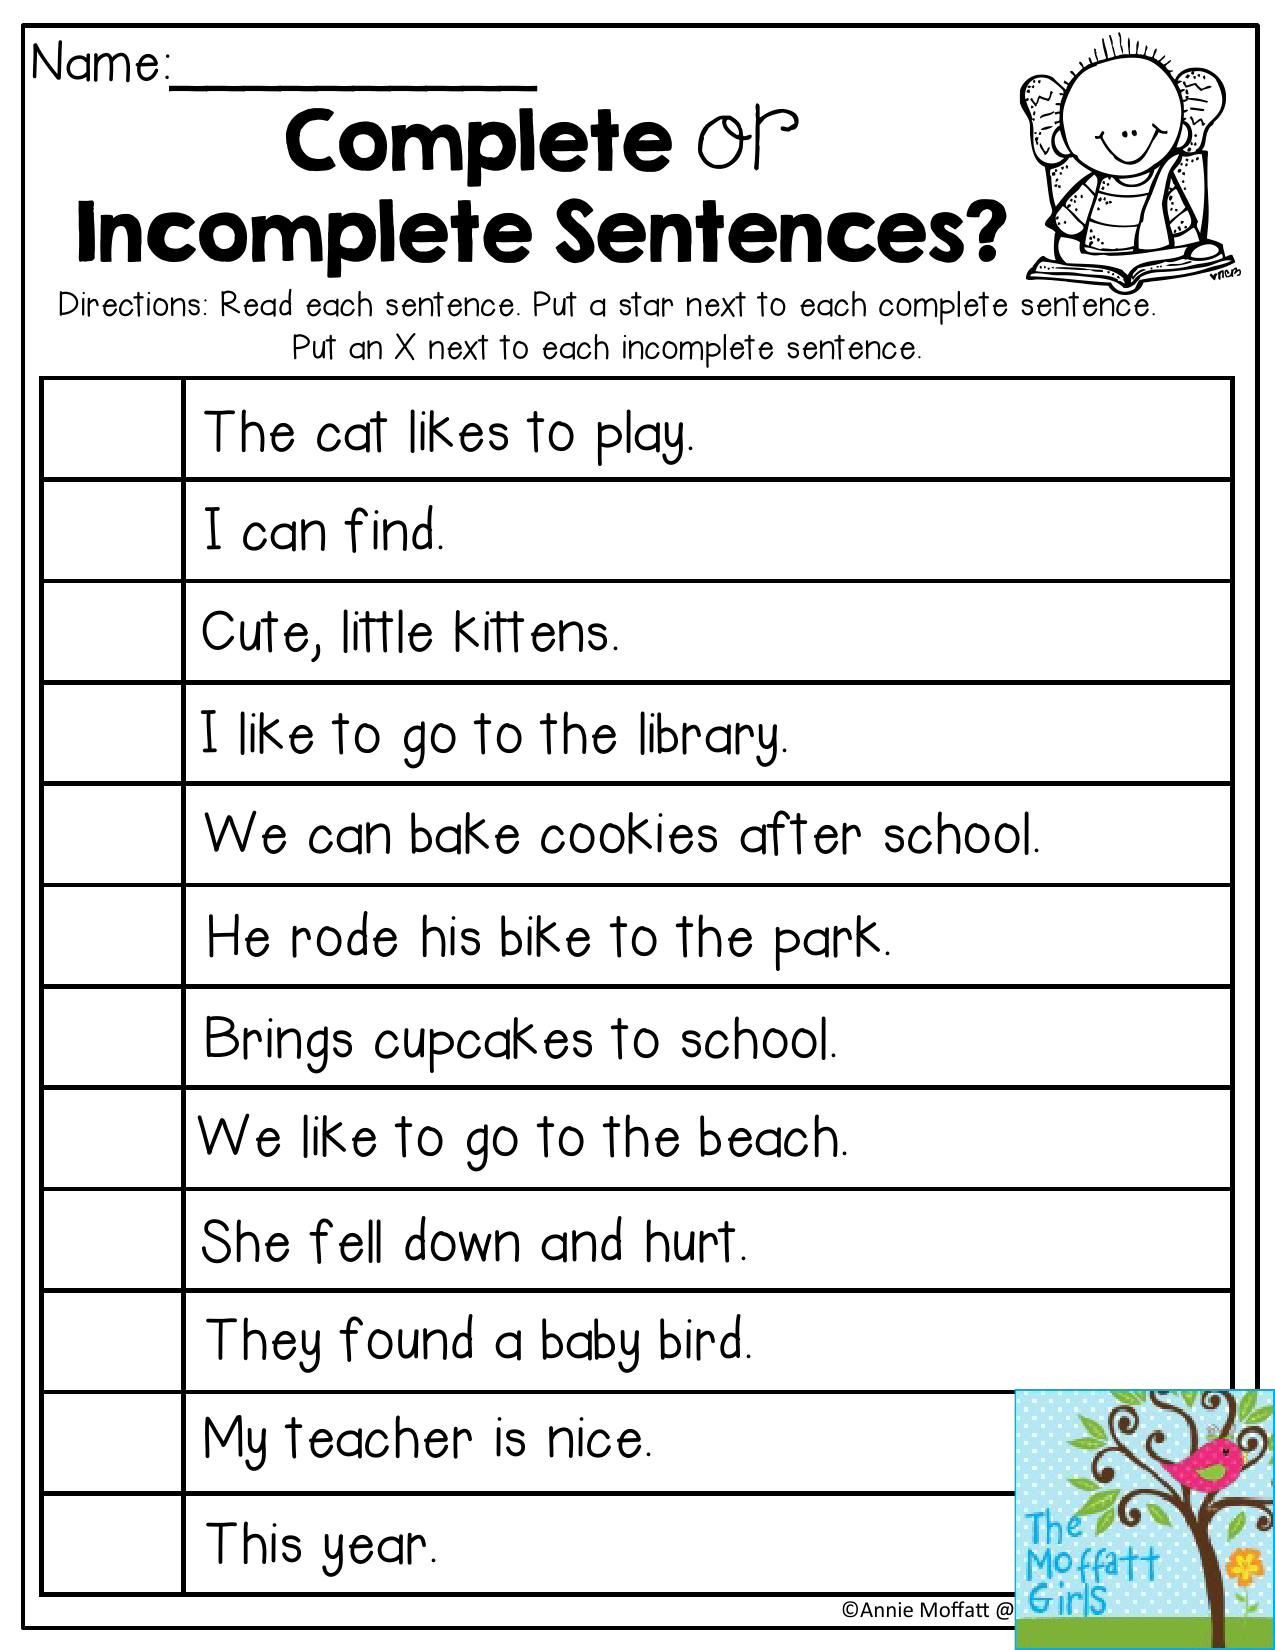 Complete Sentence Worksheets 3rd Grade Back to School Packets